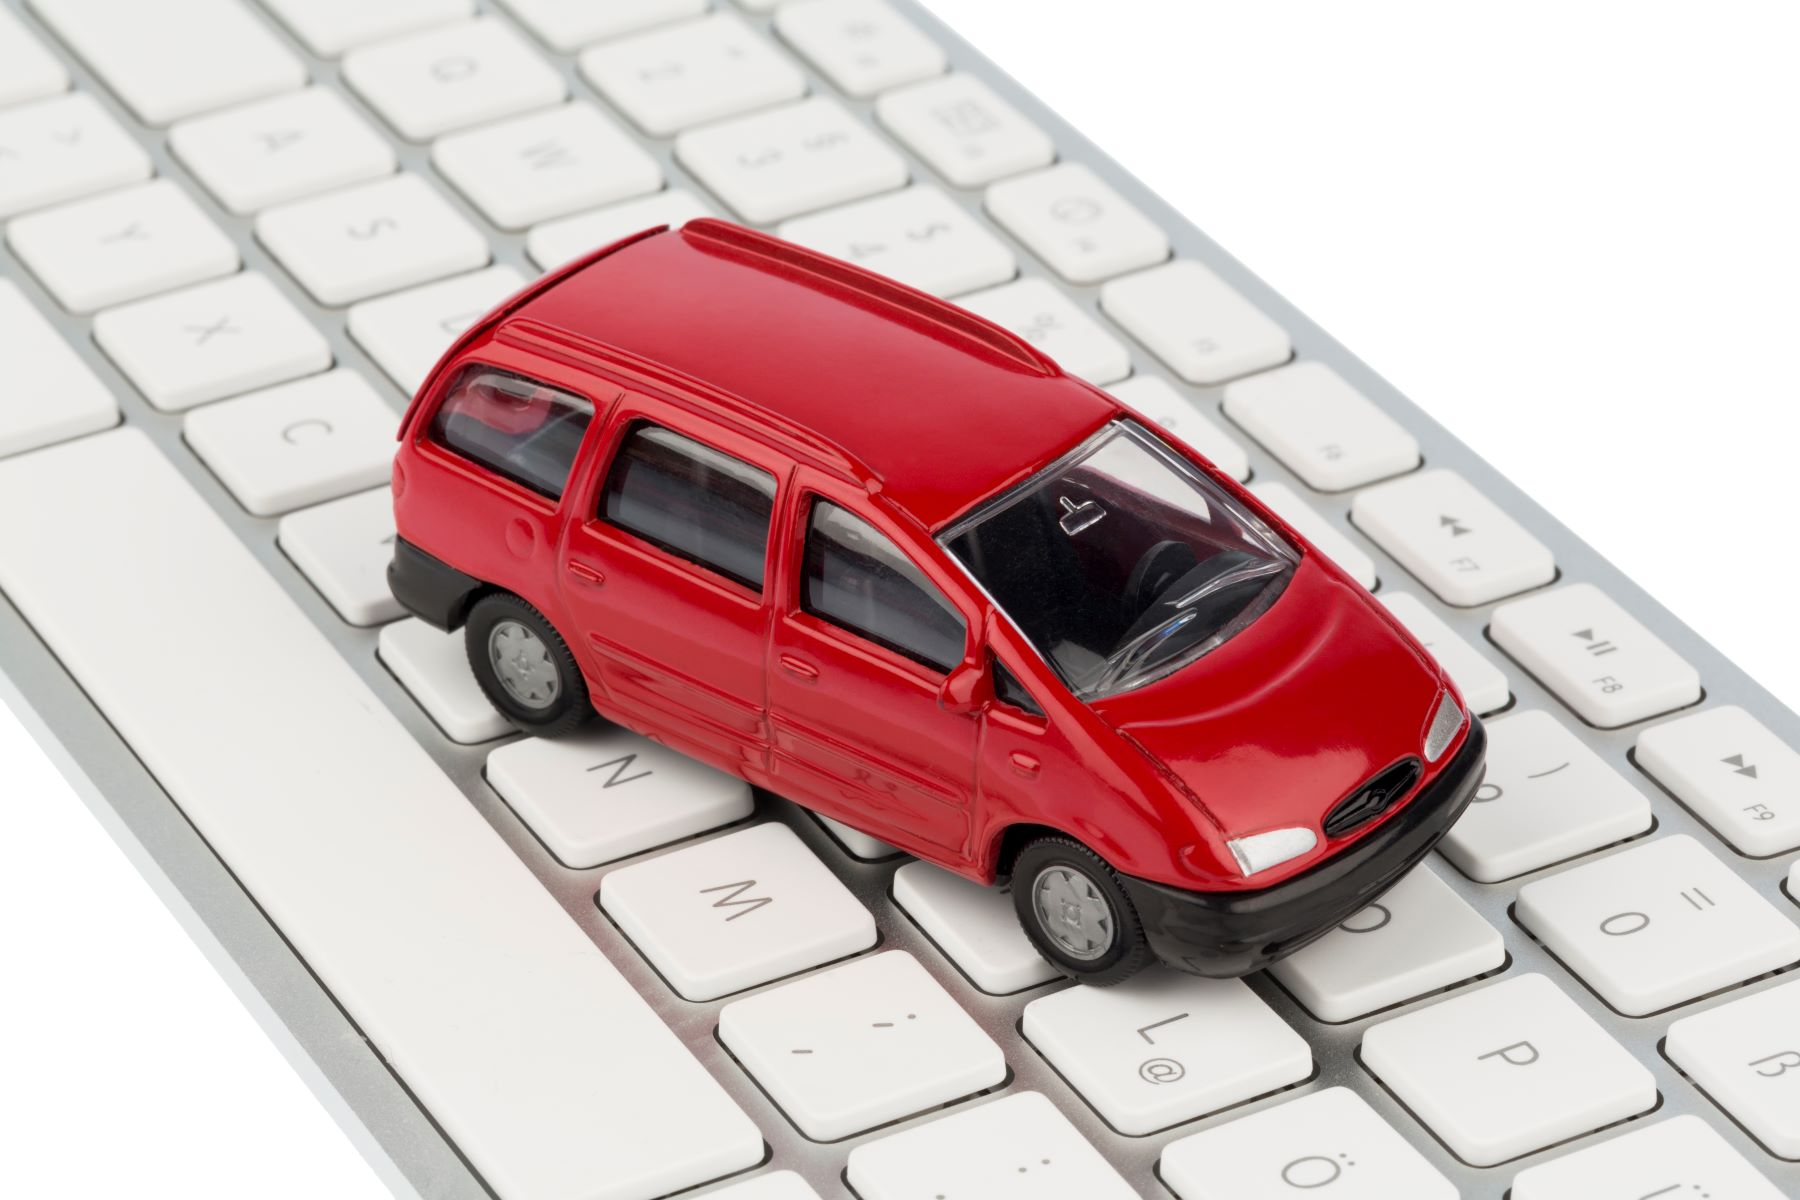 A red toy car on a keyboard symbolizing car buying online